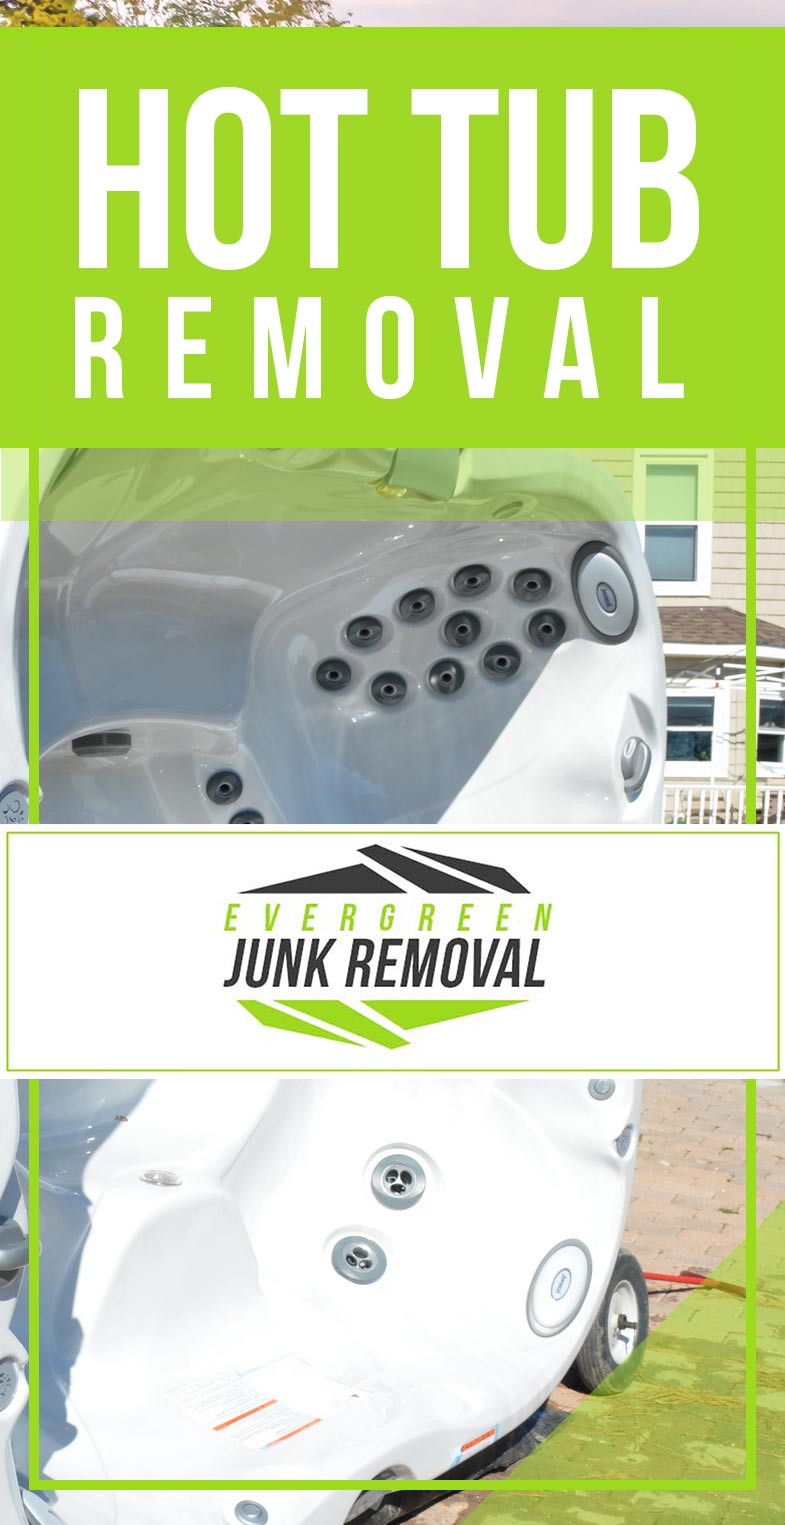 Nevada City Hot Tub Removal